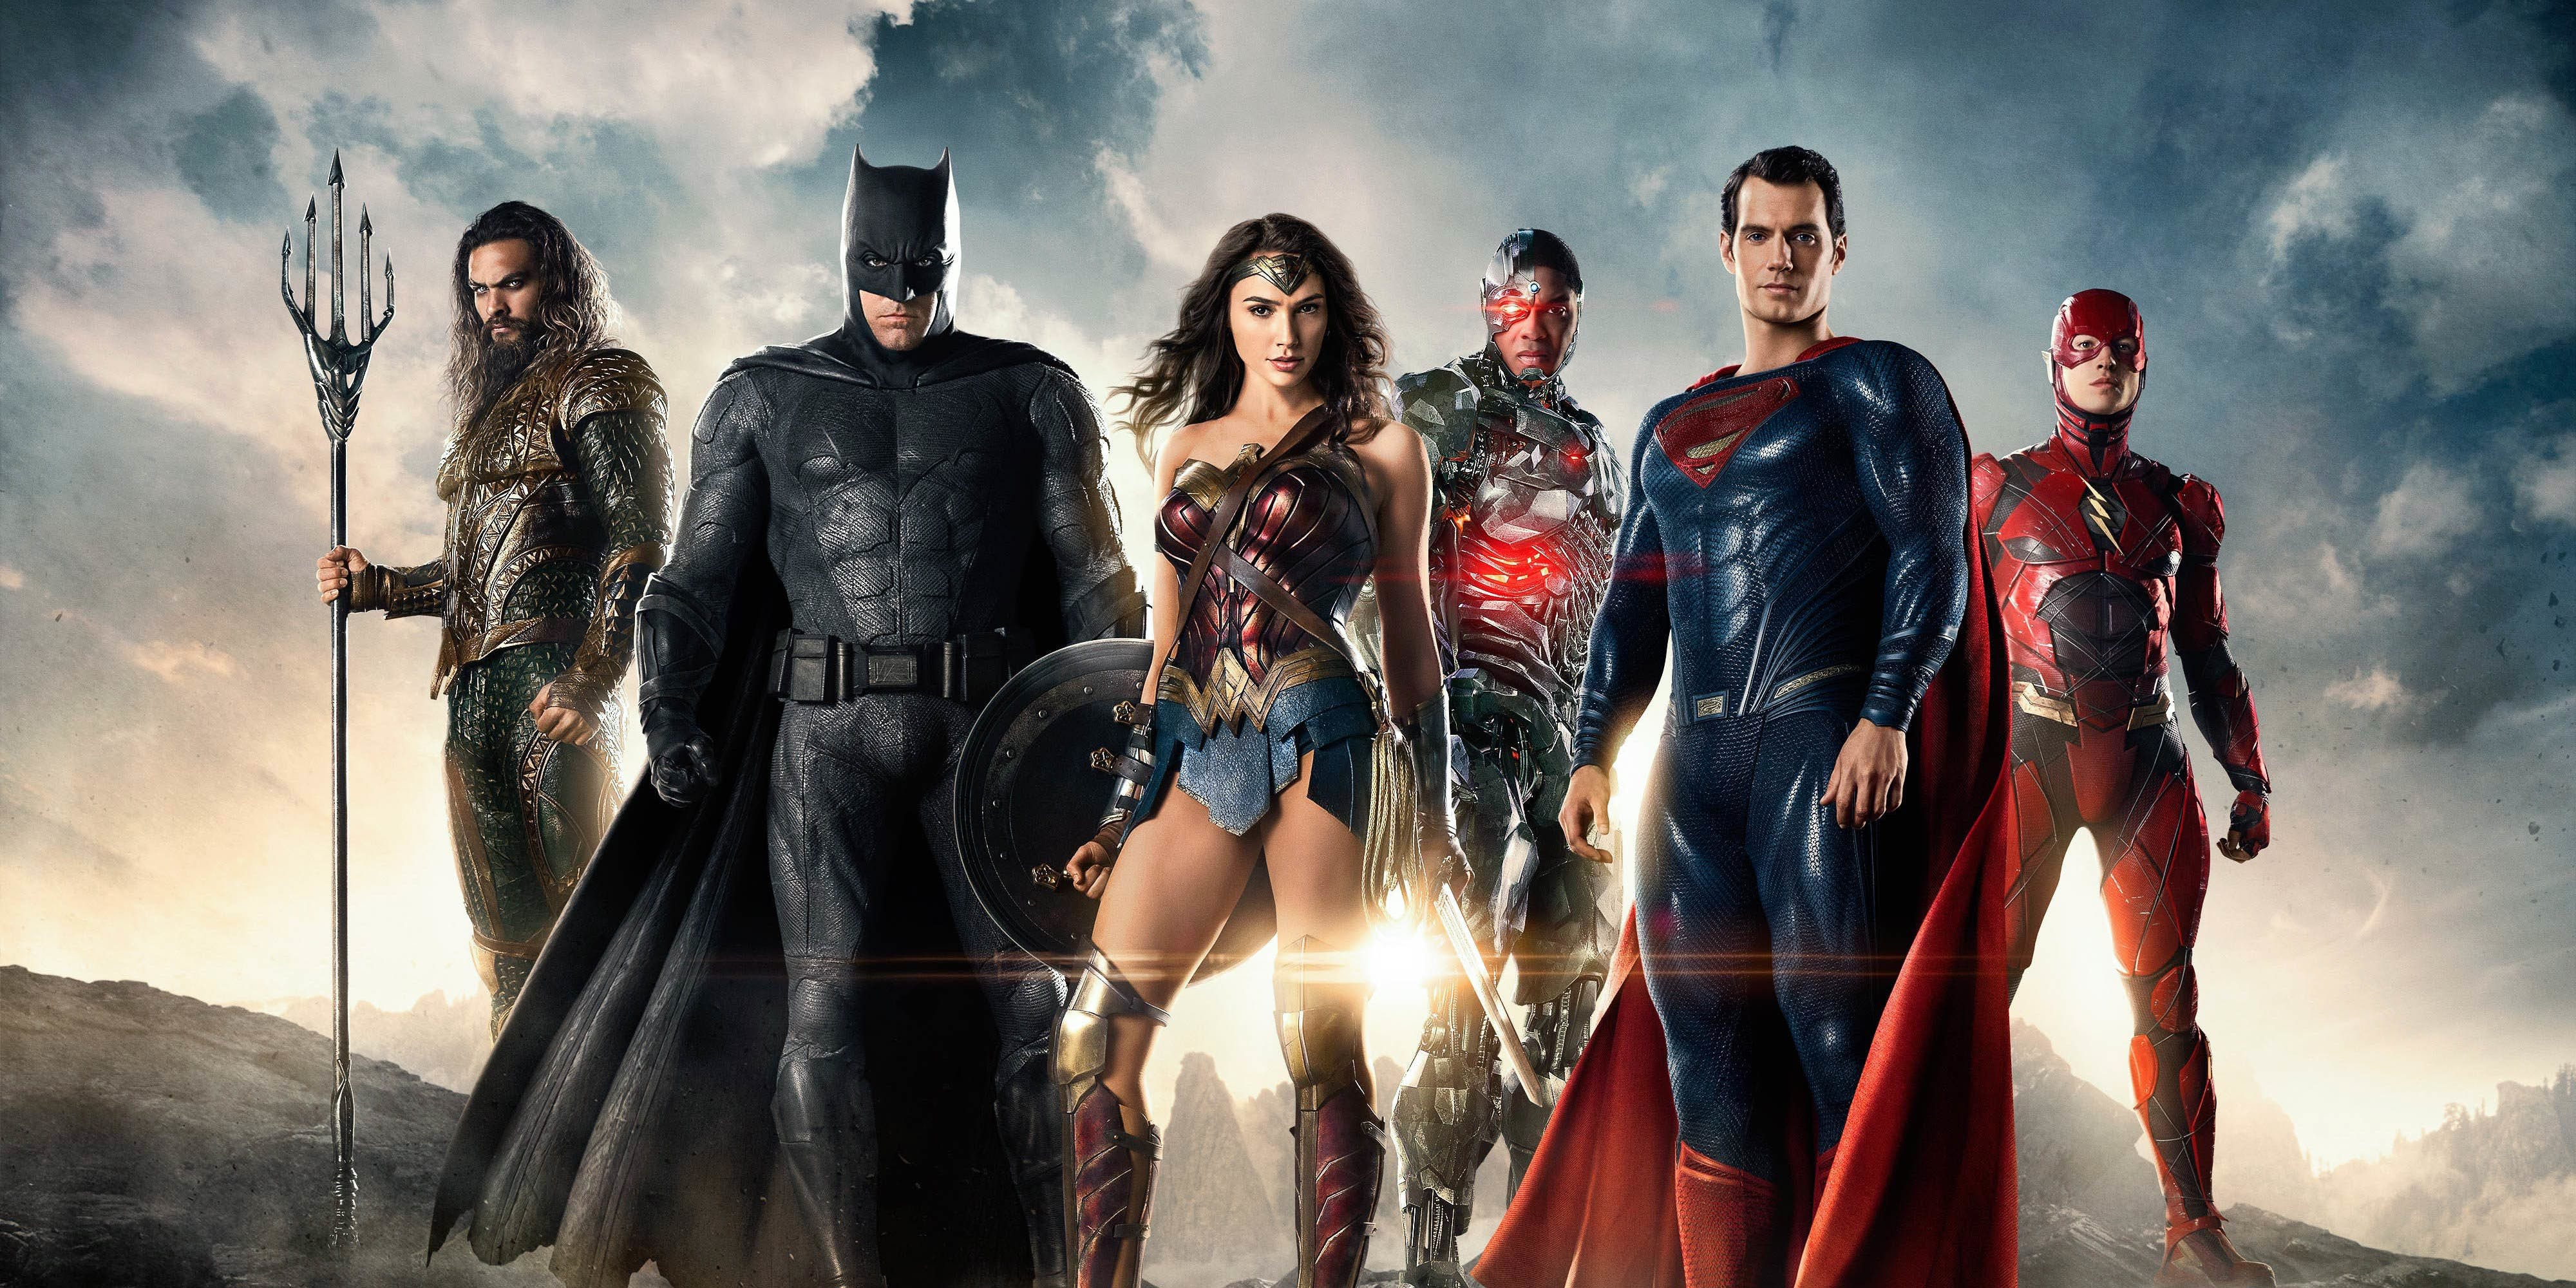 justice-league-movie-header.jpg